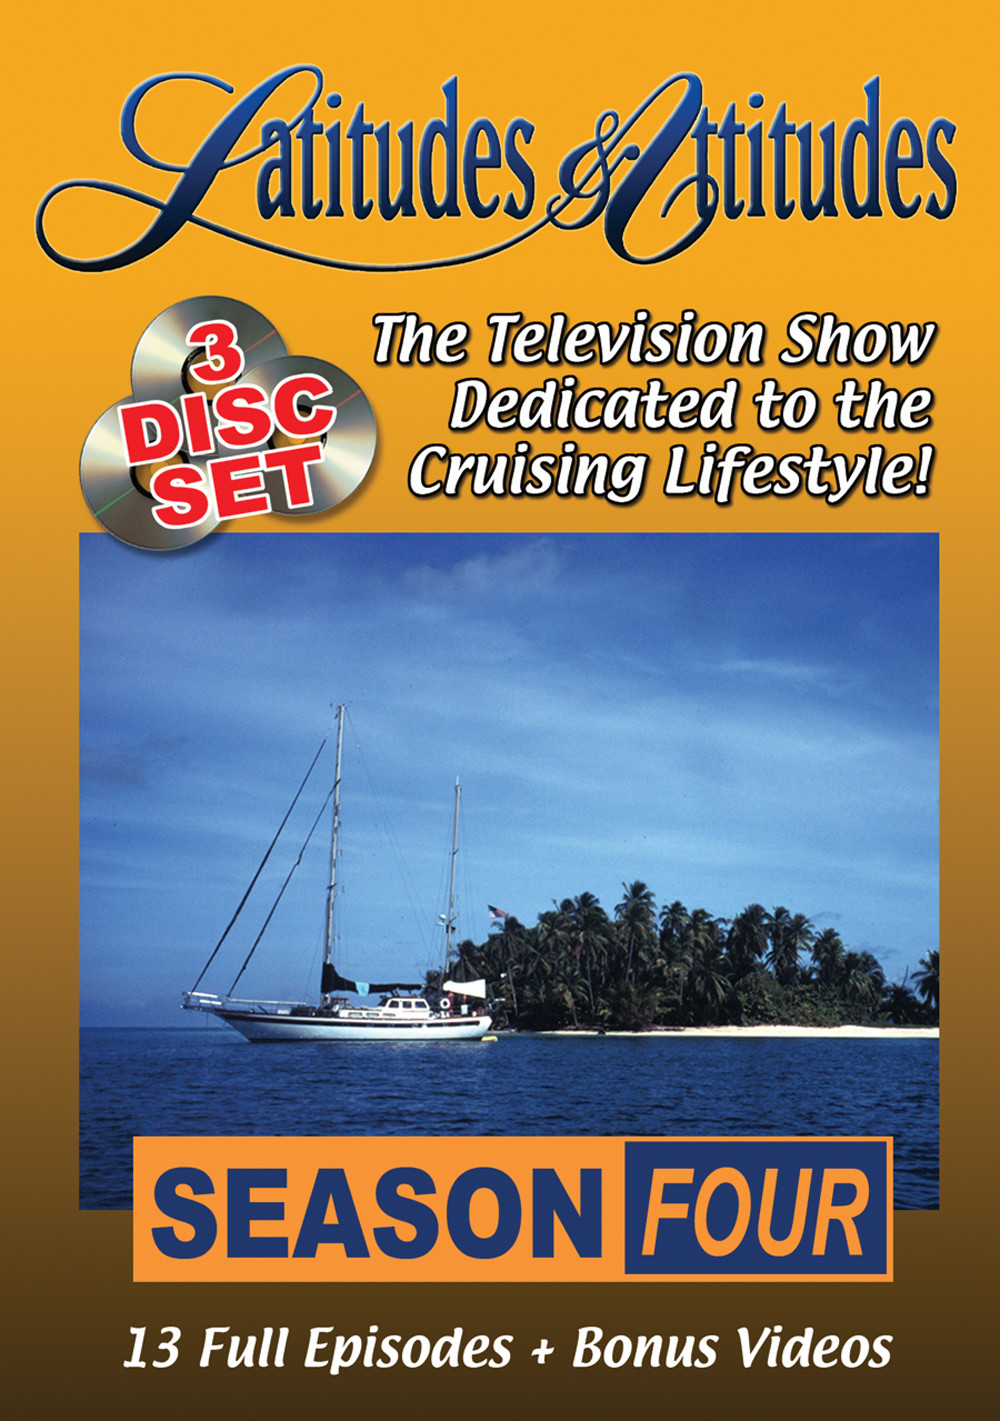 Latitudes & Attitudes TV Season #4 (3 - DVD Set)